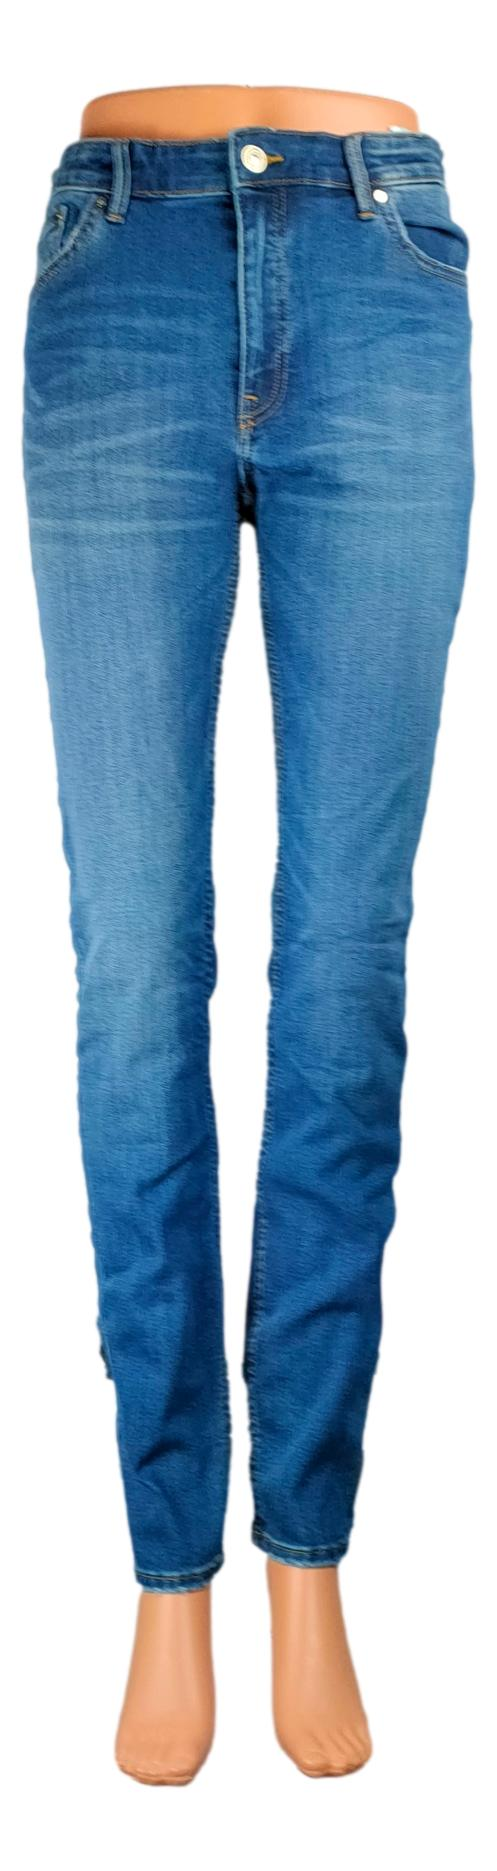 Jean H&M -taille 40